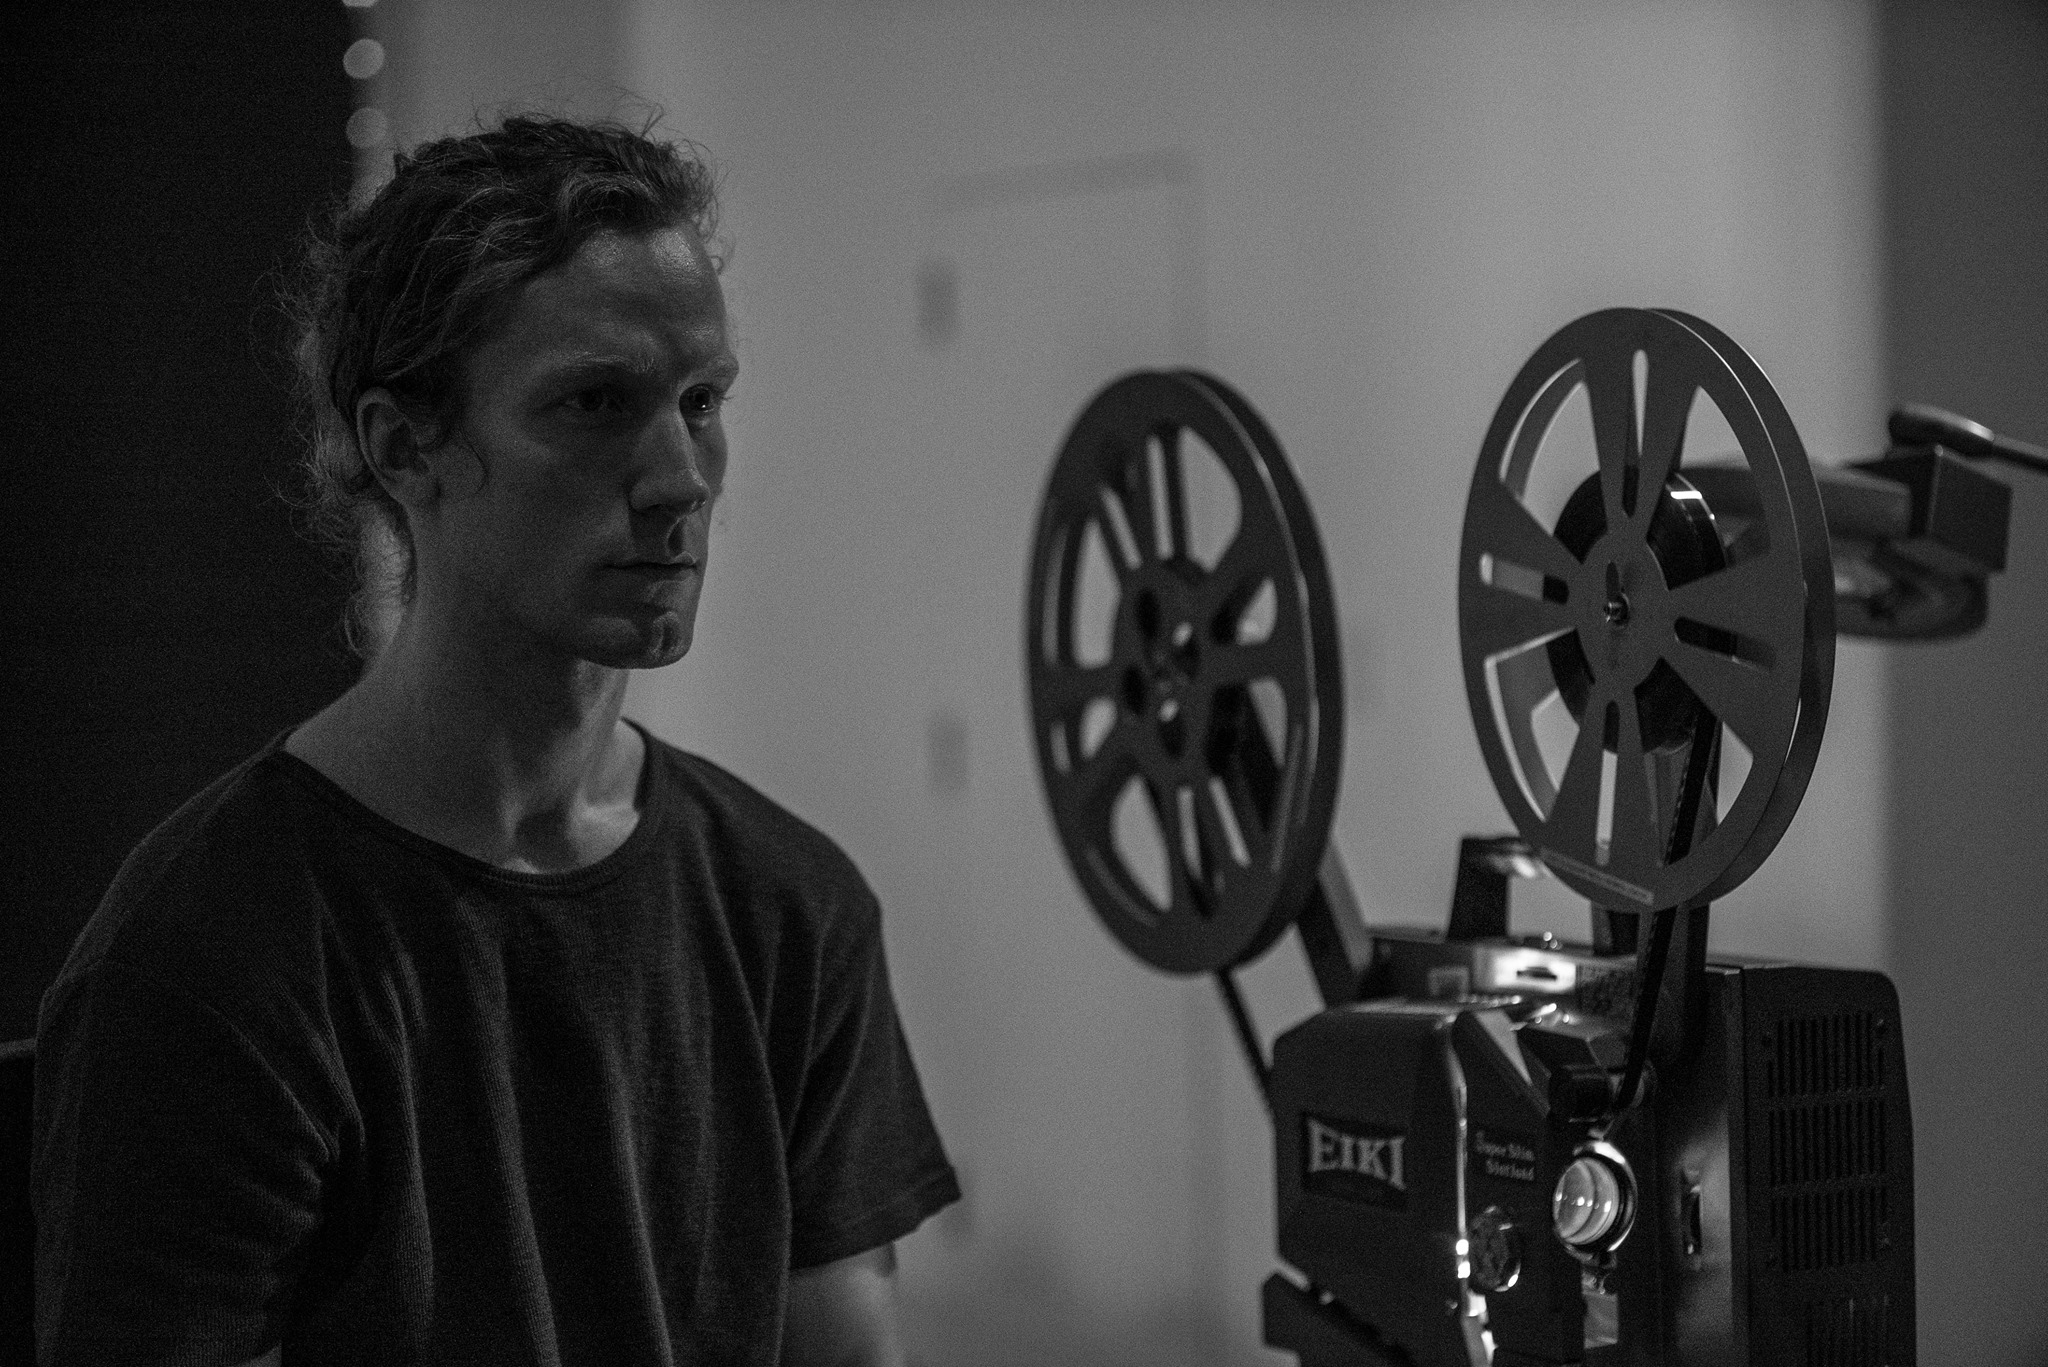 Justin Zielke as the projectionist during CHET